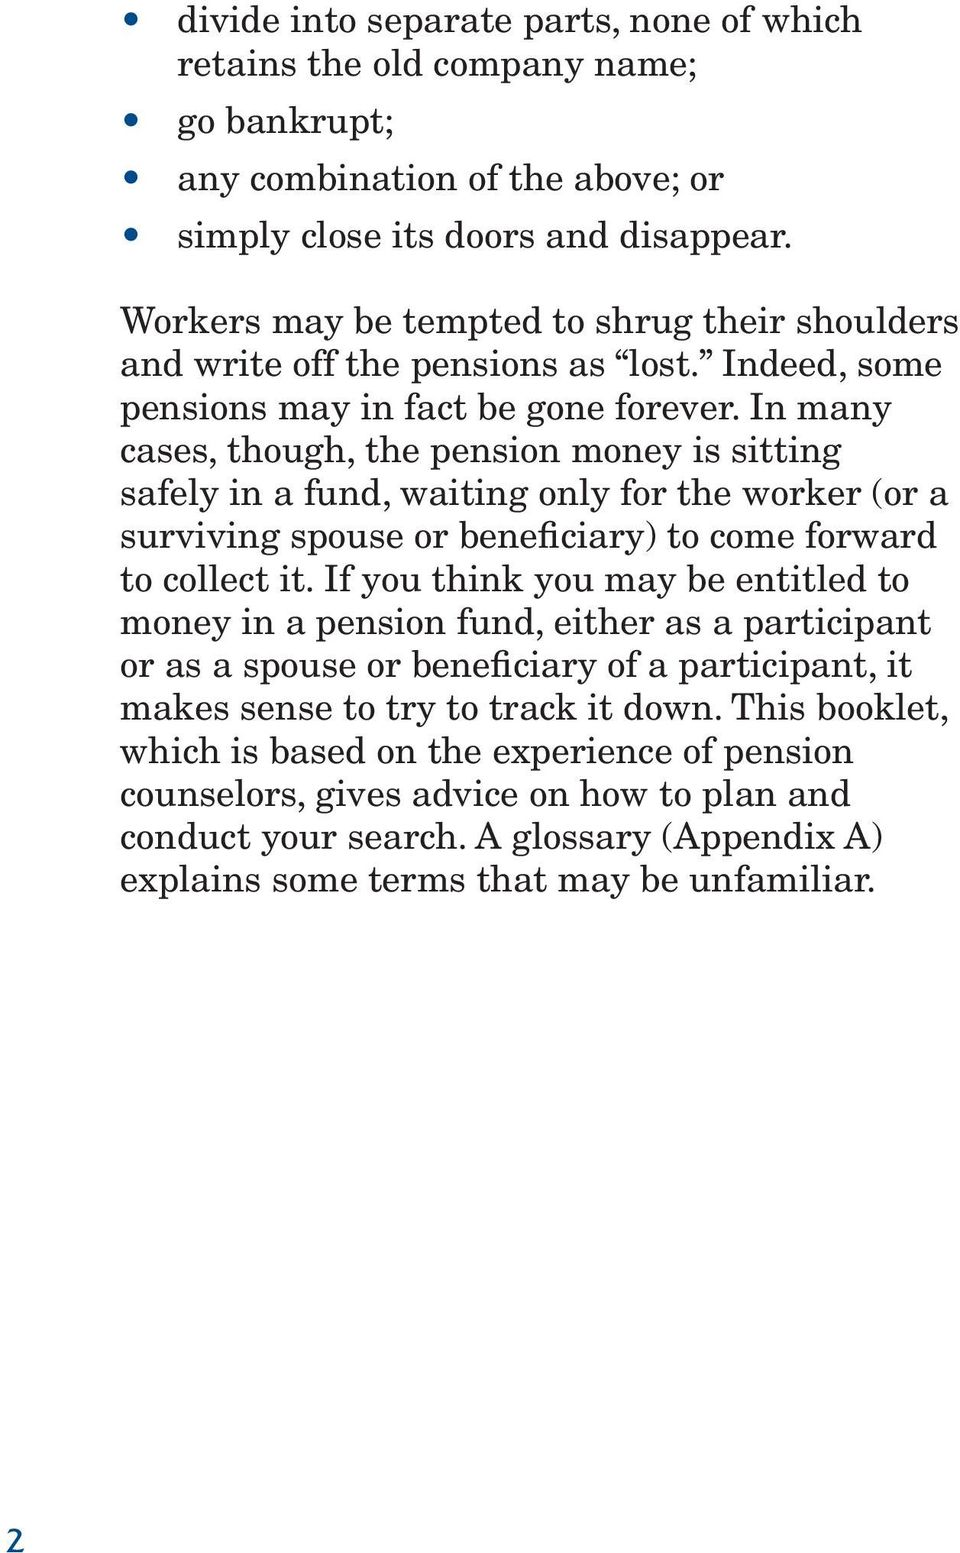 In many cases, though, the pension money is sitting safely in a fund, waiting only for the worker (or a surviving spouse or beneficiary) to come forward to collect it.